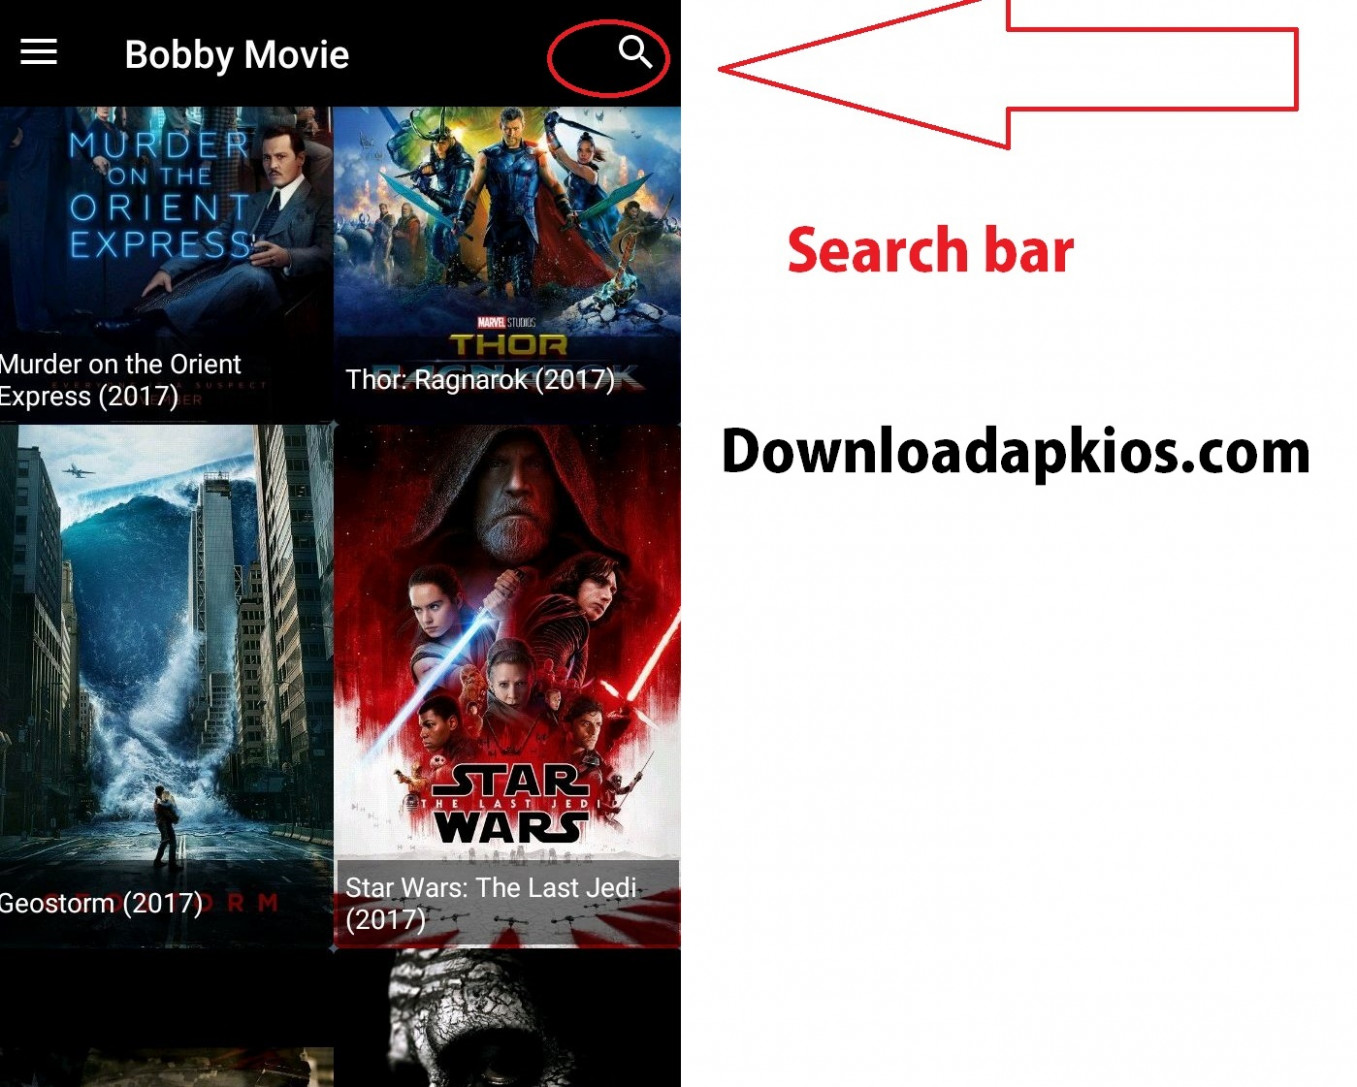 Bobby Movie apk Download Latest Version - Download APK IOS